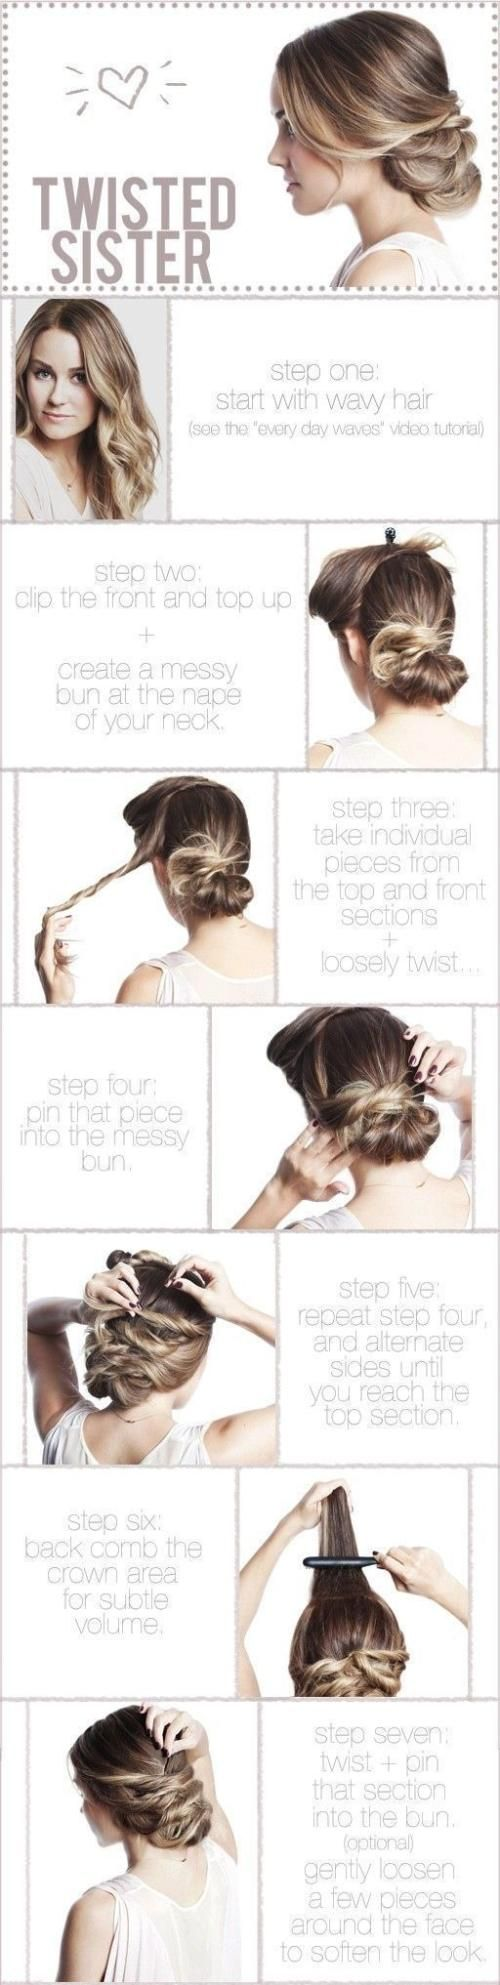 need to try this, just waiting for my hair to get longer!! =) pero me gusta